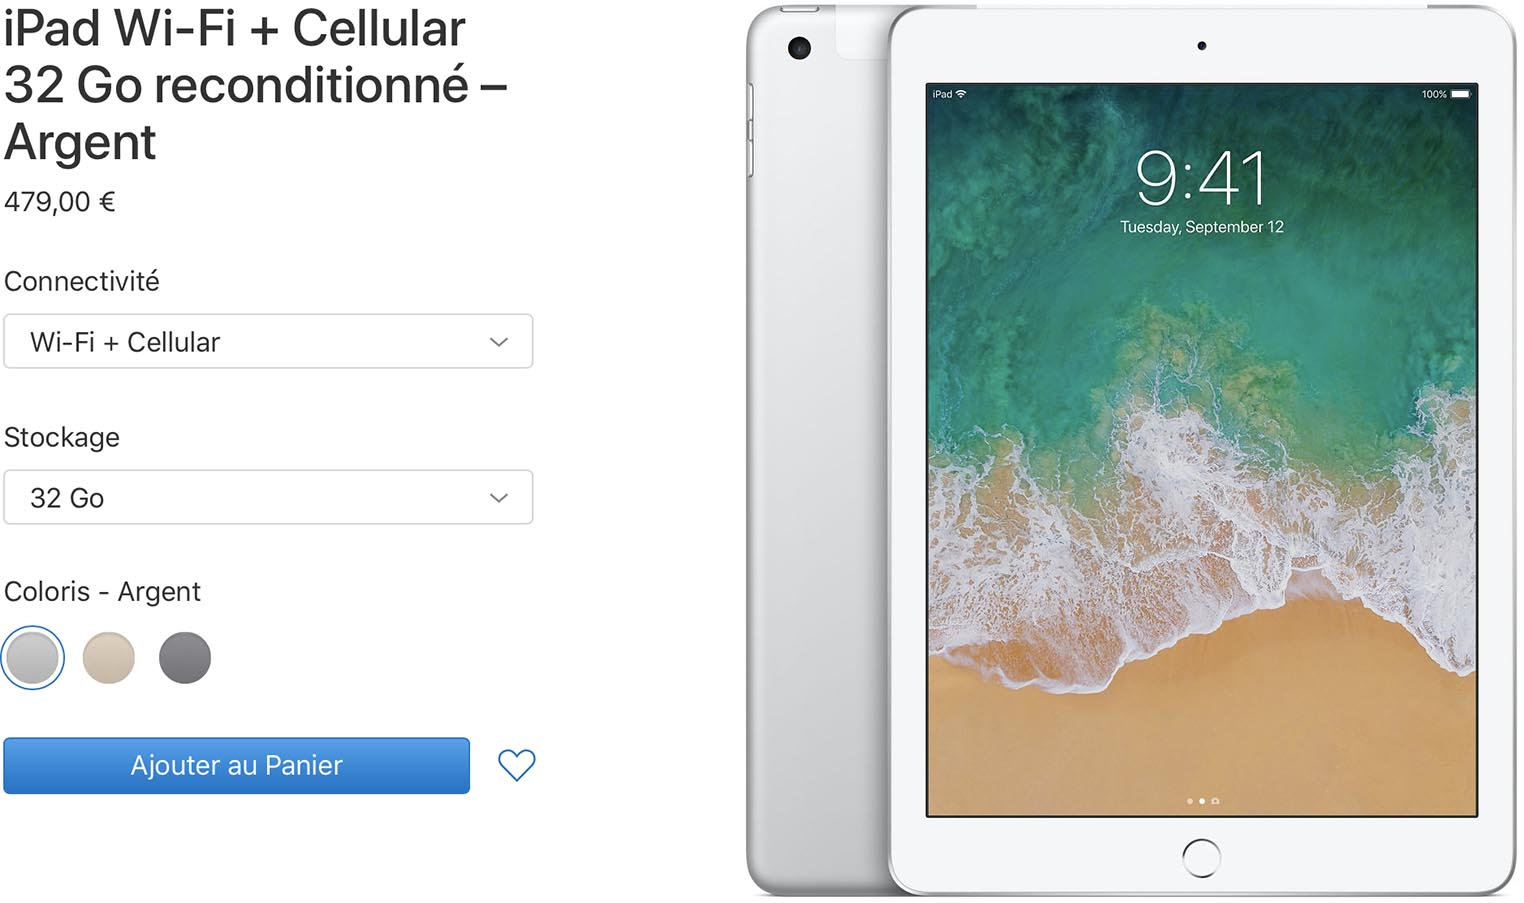 iPad 2017 cellulaire Refurb Store